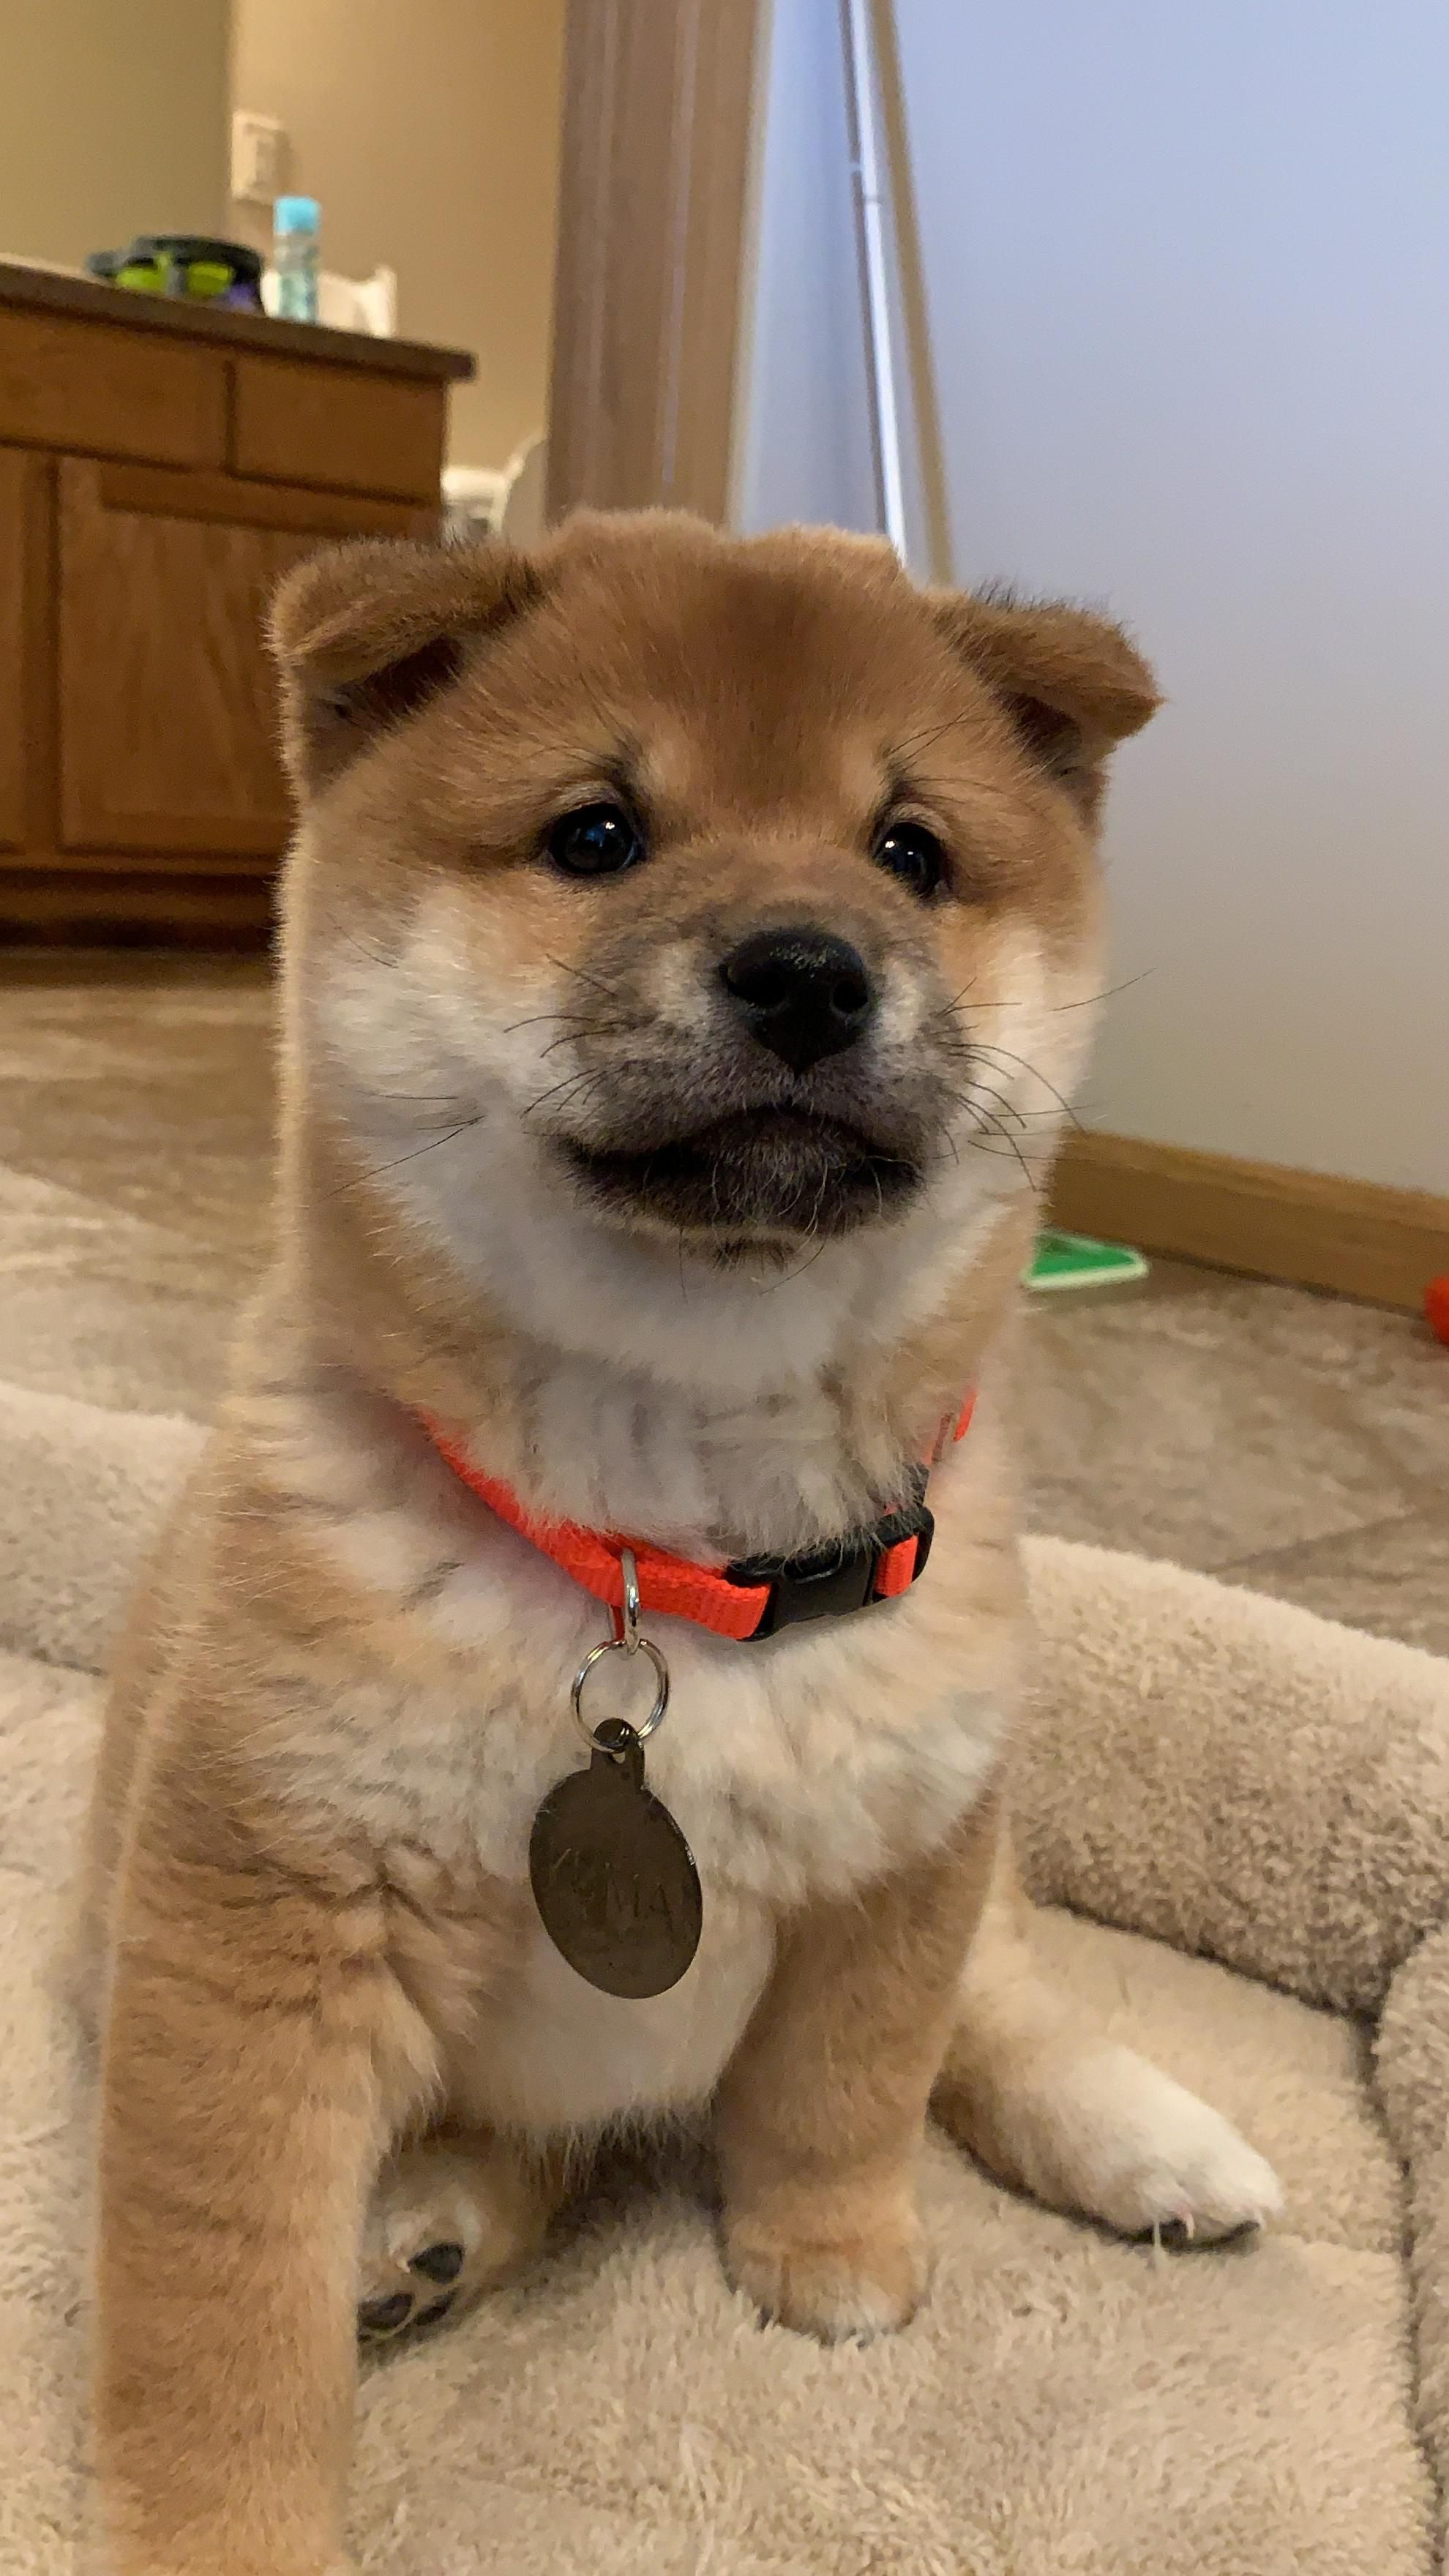 Corgi Shiba Inu Mix Reviewed By Vets 3 Reasons To Avoid Doggypedia In 2020 Shiba Inu Cute Dogs And Puppies Puppy Breeds